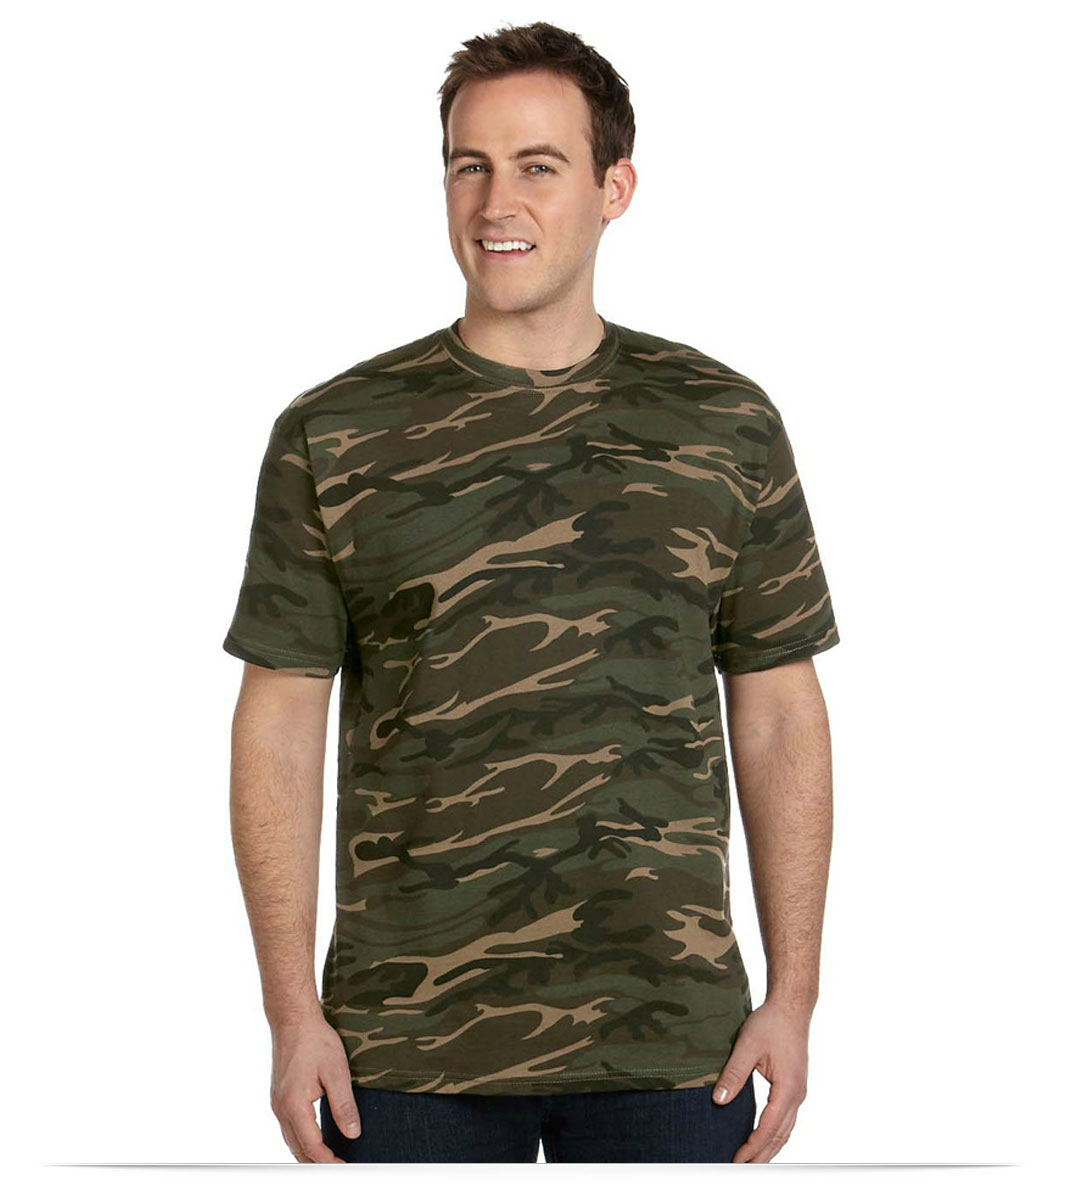 Custom Printed Anvil Midweight Camouflage T Shirt Online At Allstar Logo